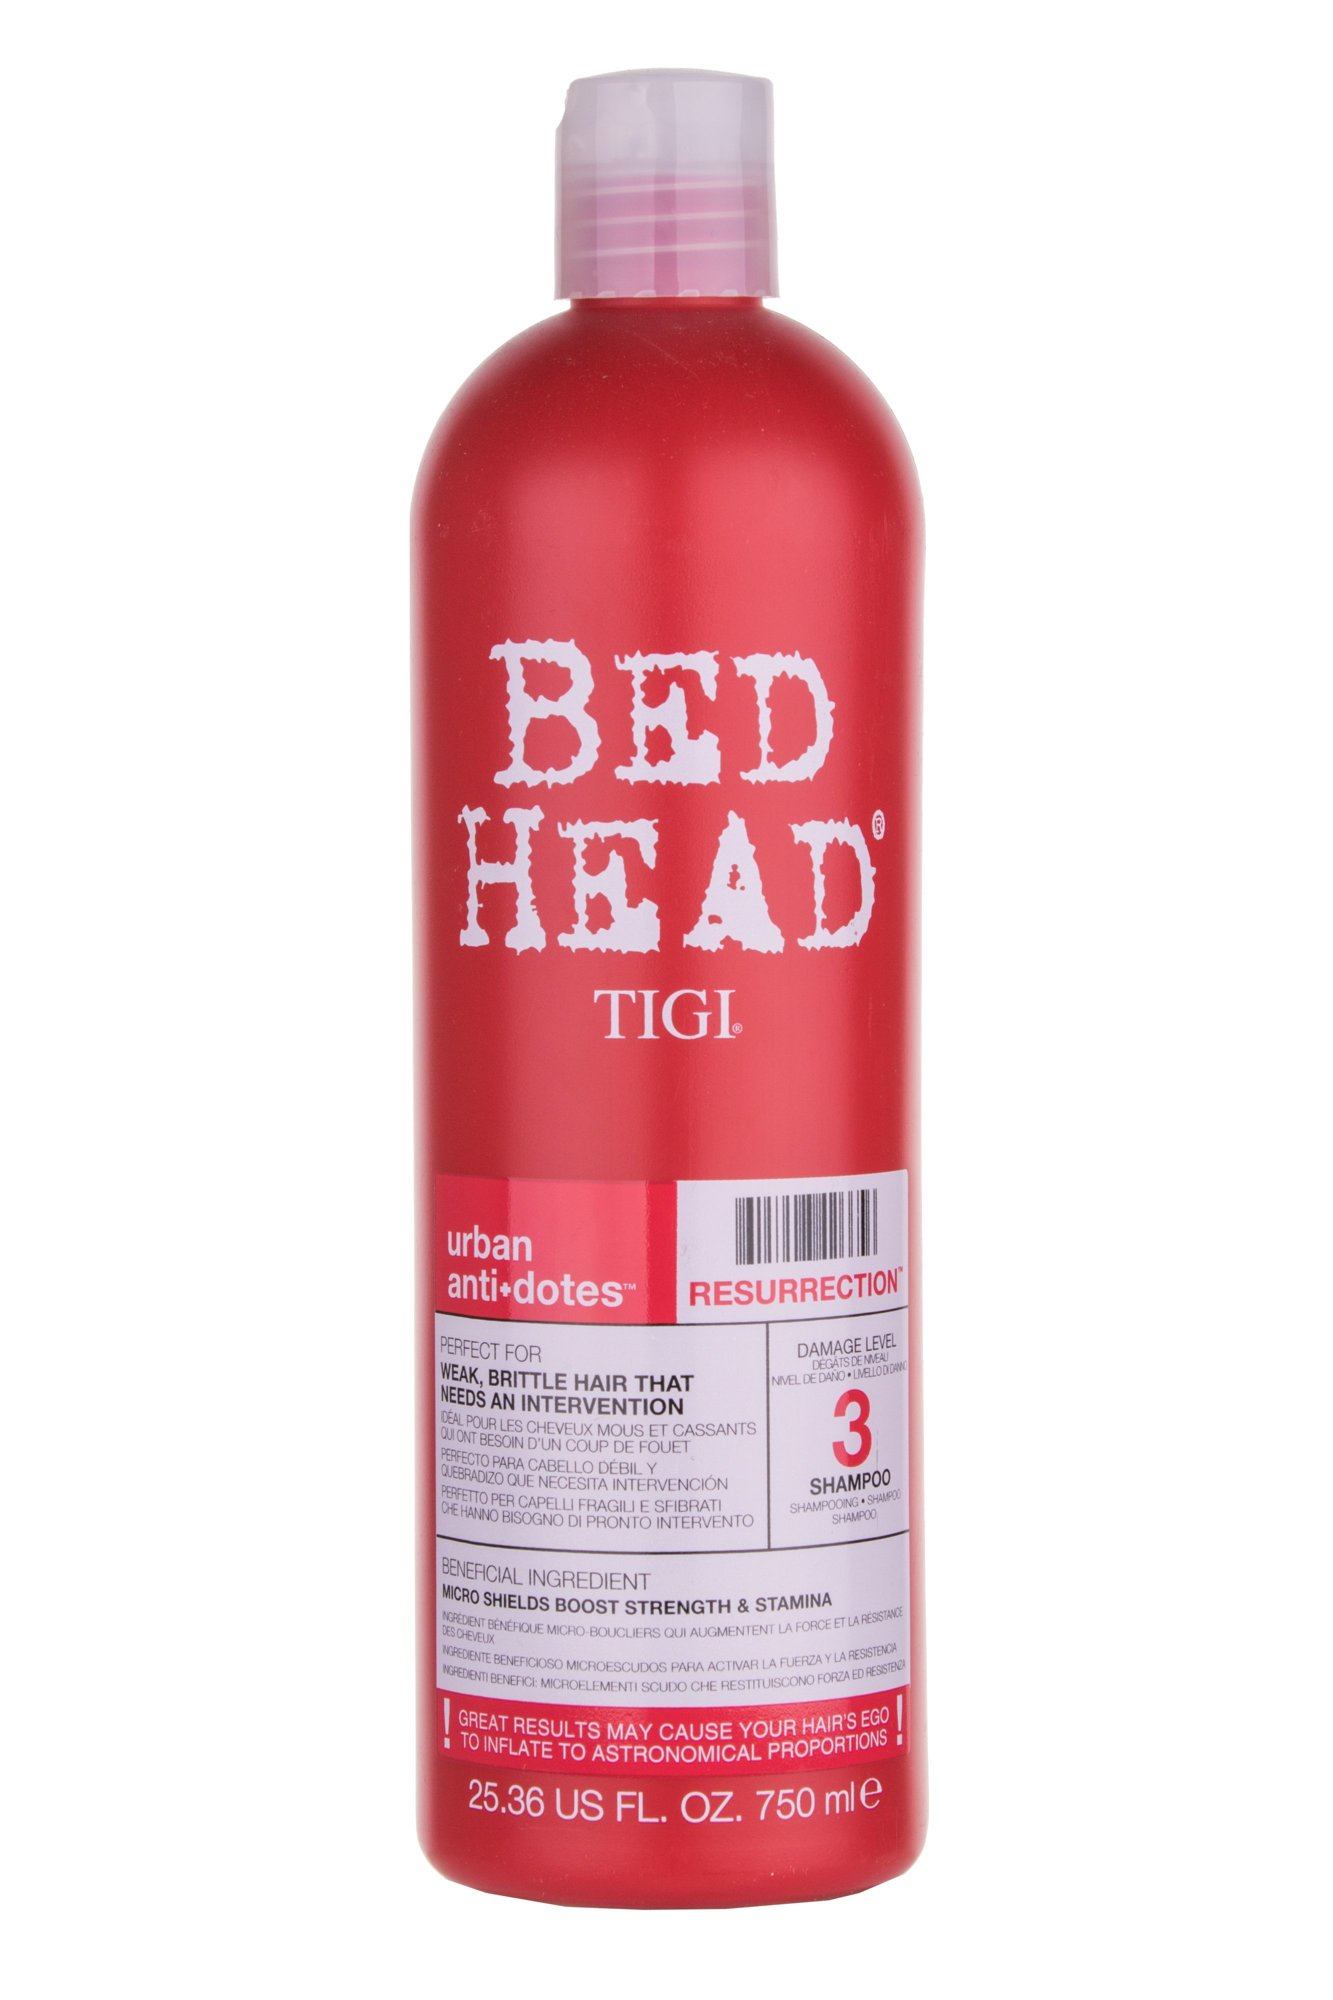 Tigi Bed Head Resurrection Cosmetic 750ml